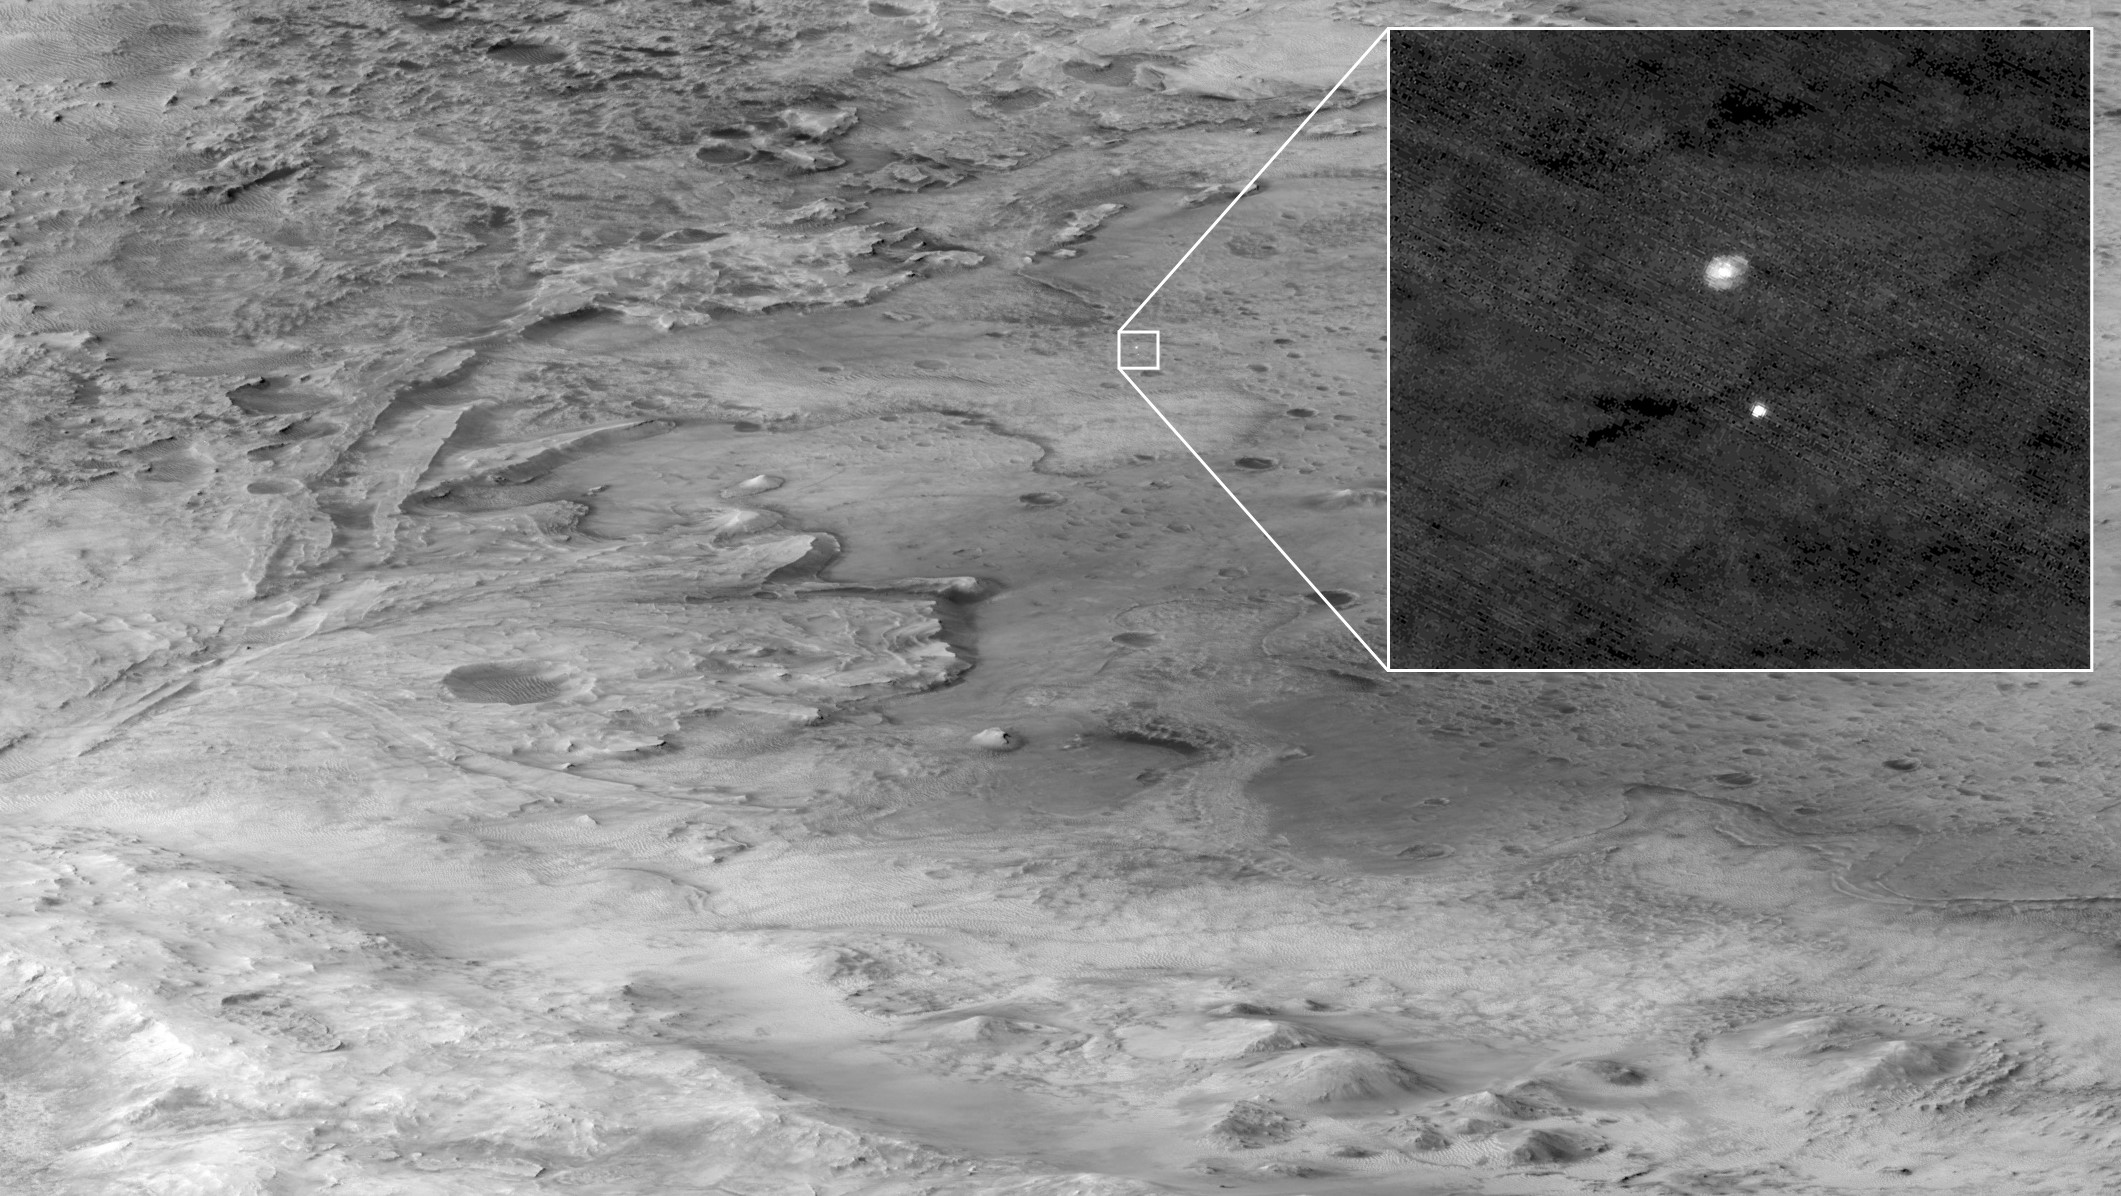 Photo extracted from 700km away by the Mars investigation Orbiter of the Perseverance rover climbing down under its parachute.